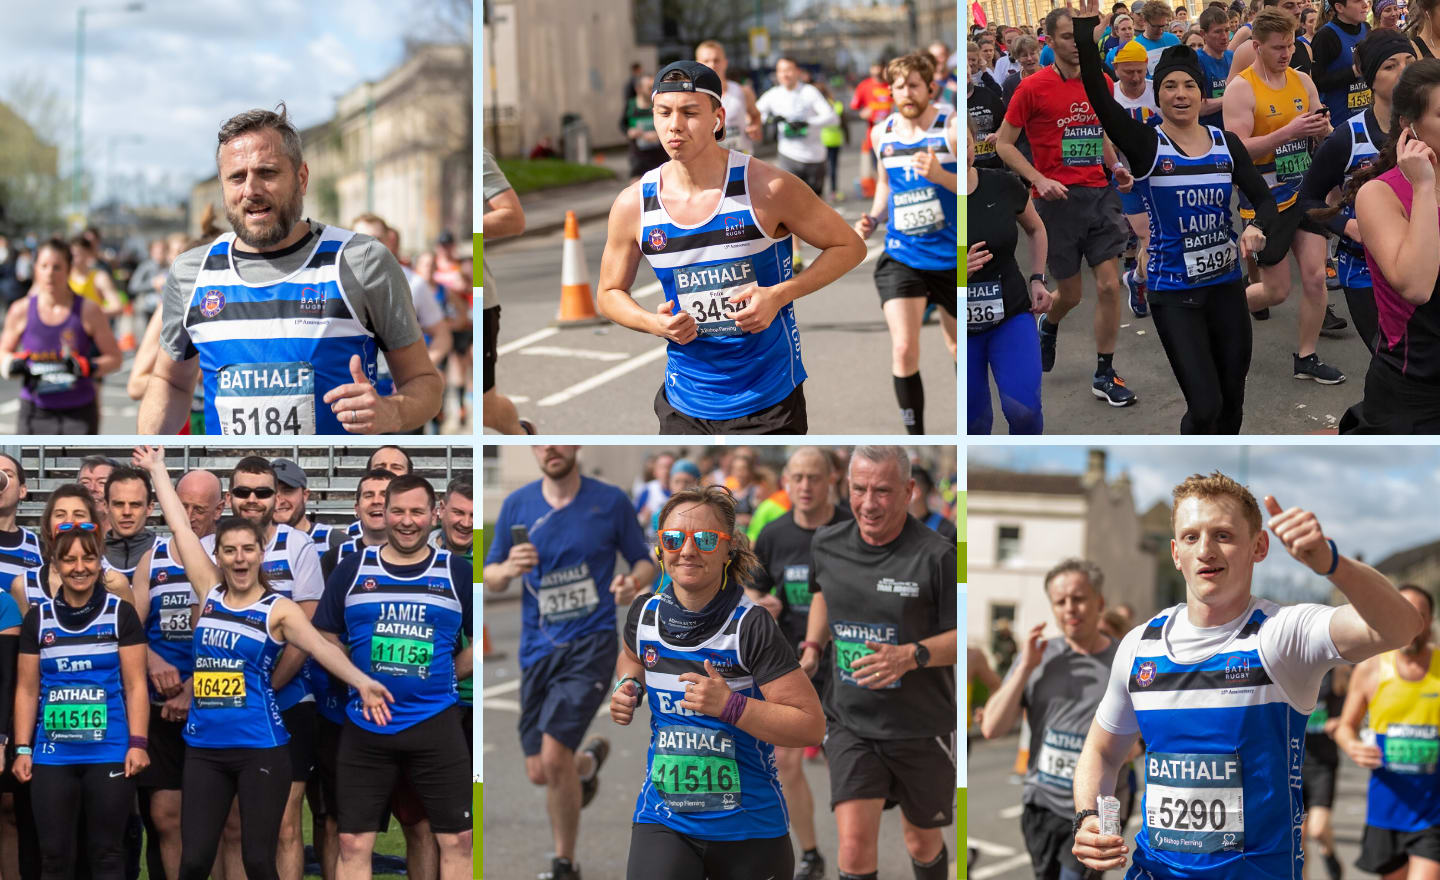 Bath Half Marathon - September 5th, 2021